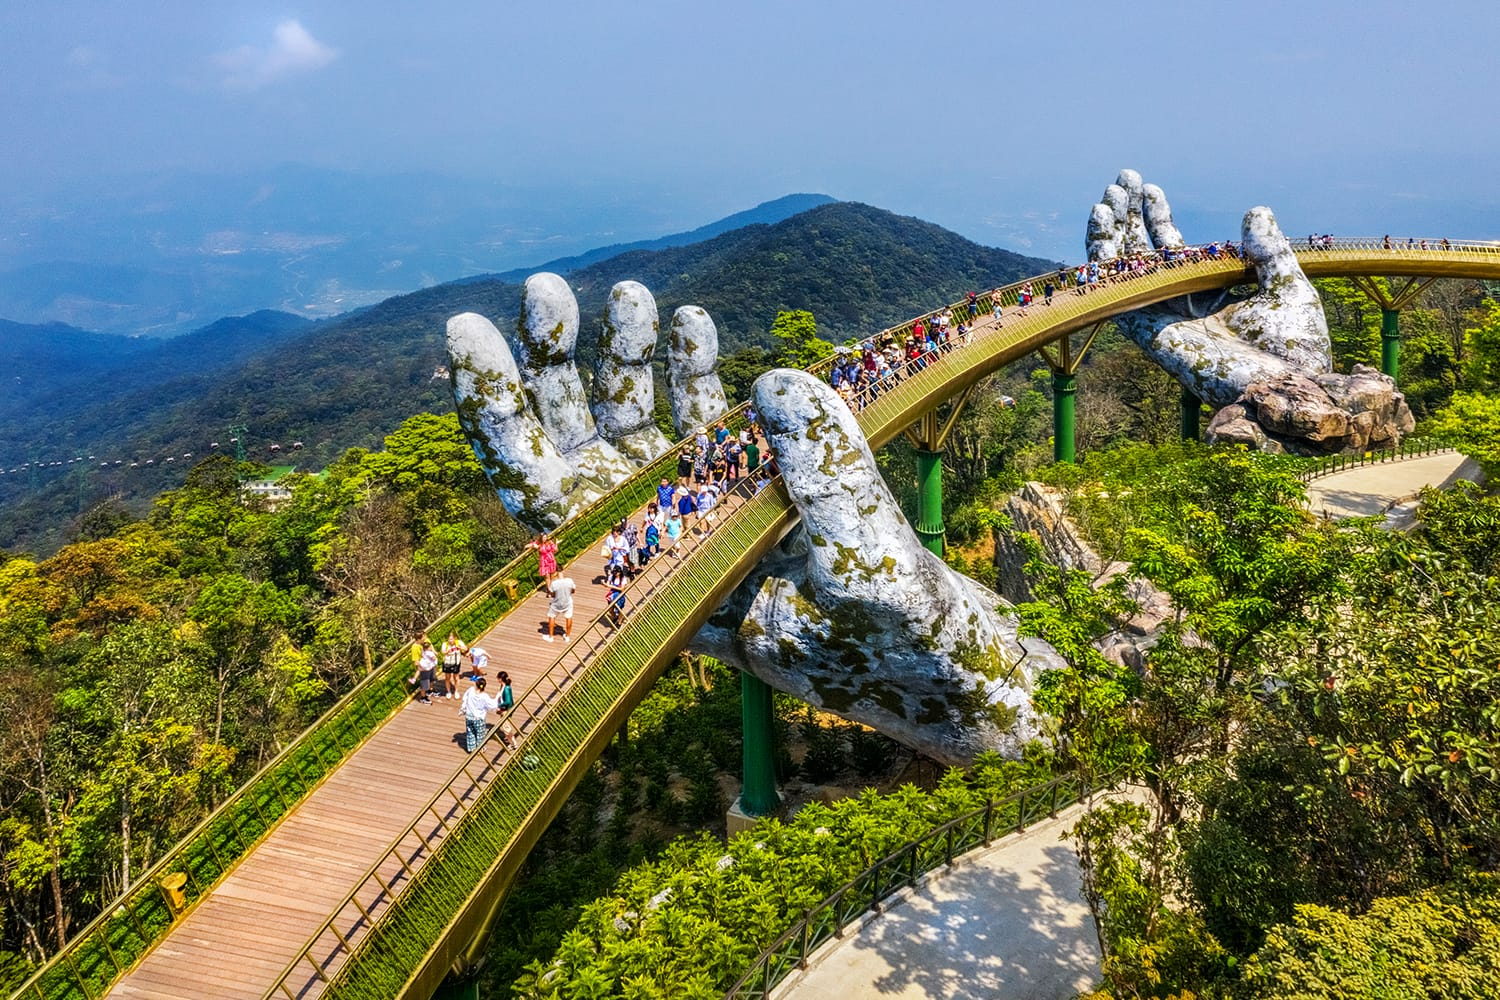 Aerial view of the Golden Bridge is lifted by two giant hands in the tourist resort on Ba Na Hill in Da Nang, Vietnam